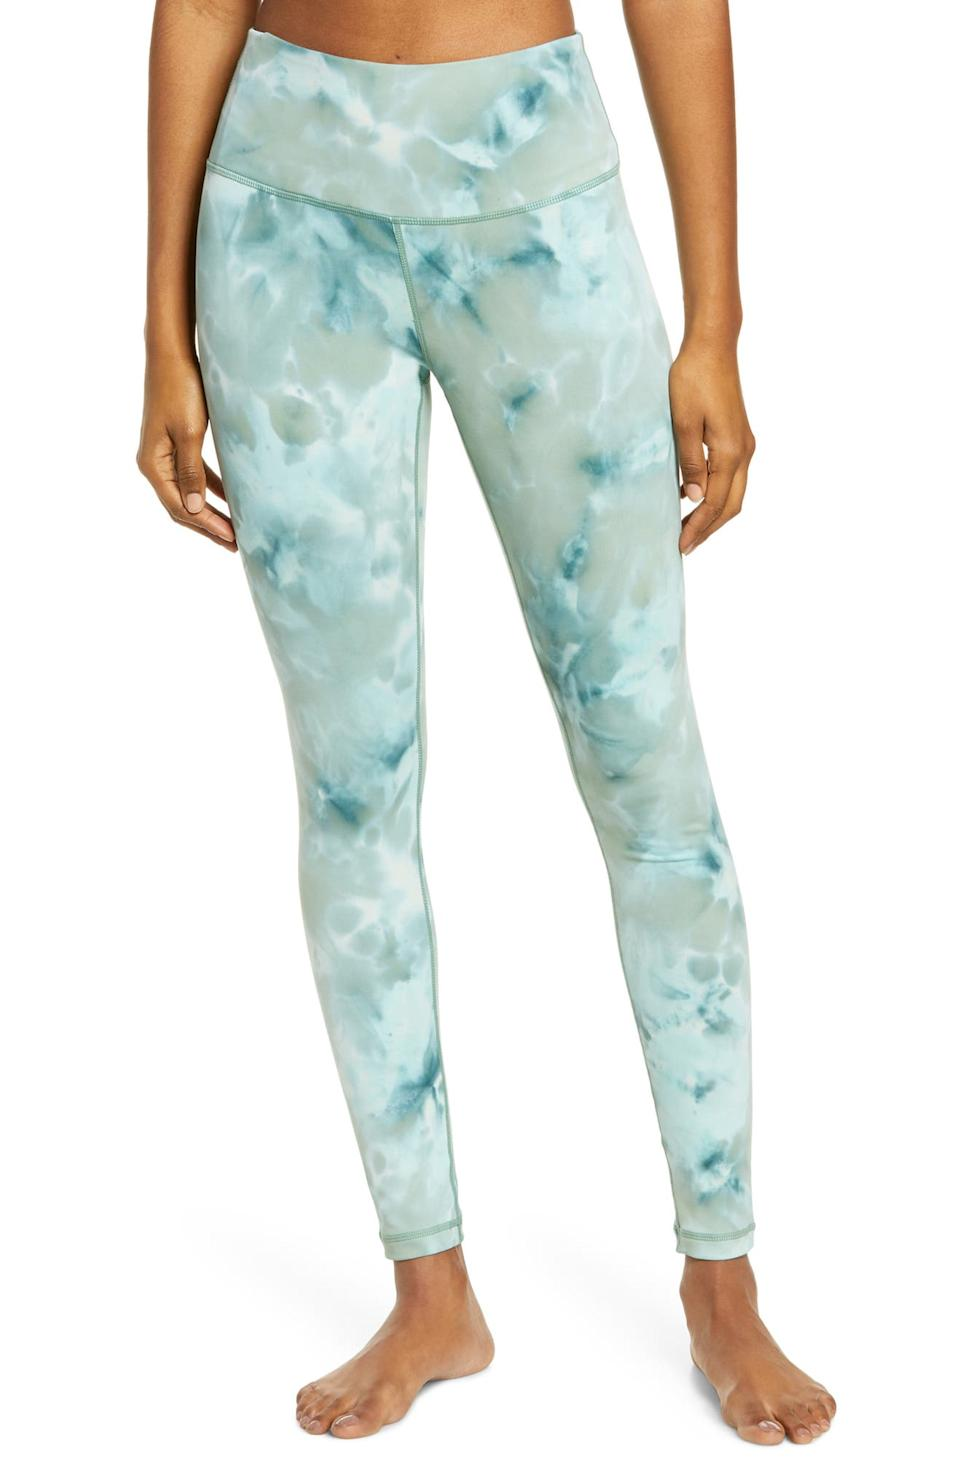 Spray Dye High Waist Leggings. Image via Nordstrom.